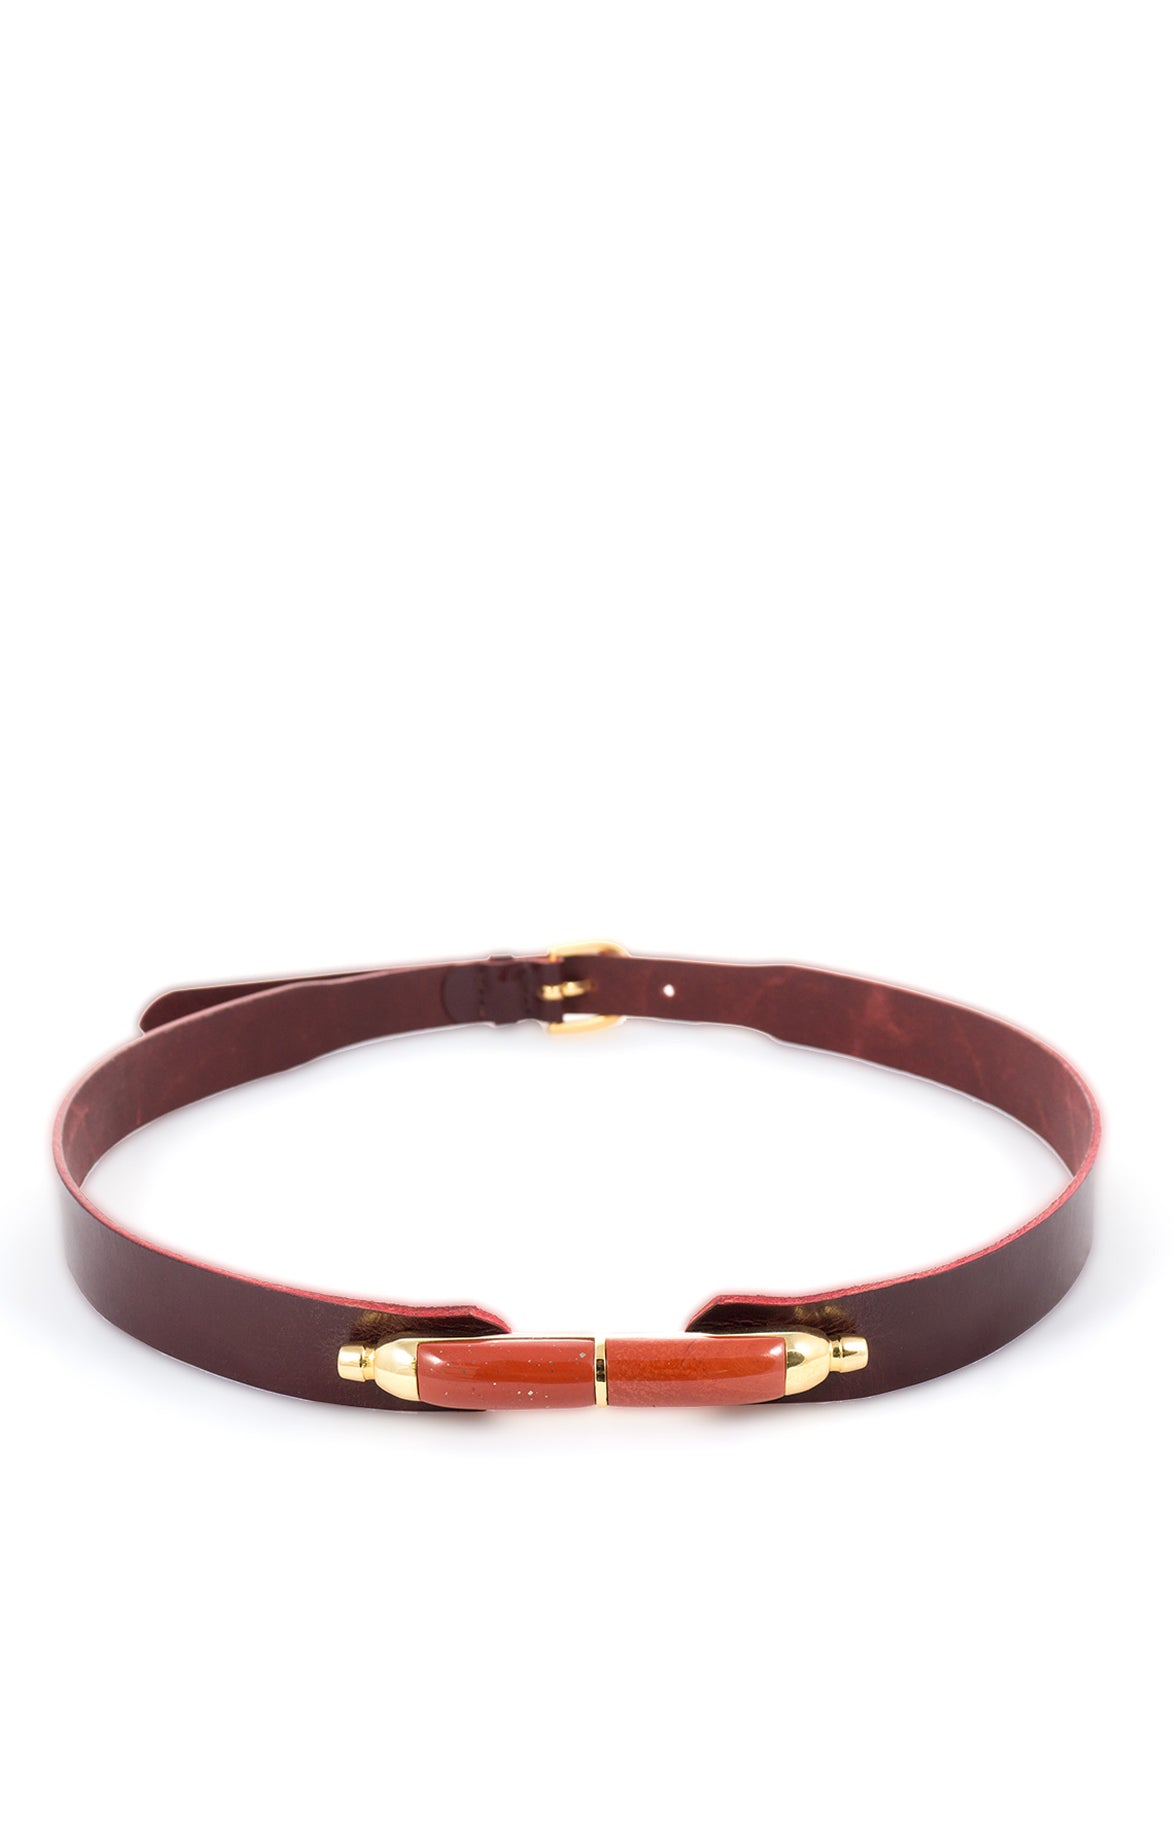 The bullet belt jasper red